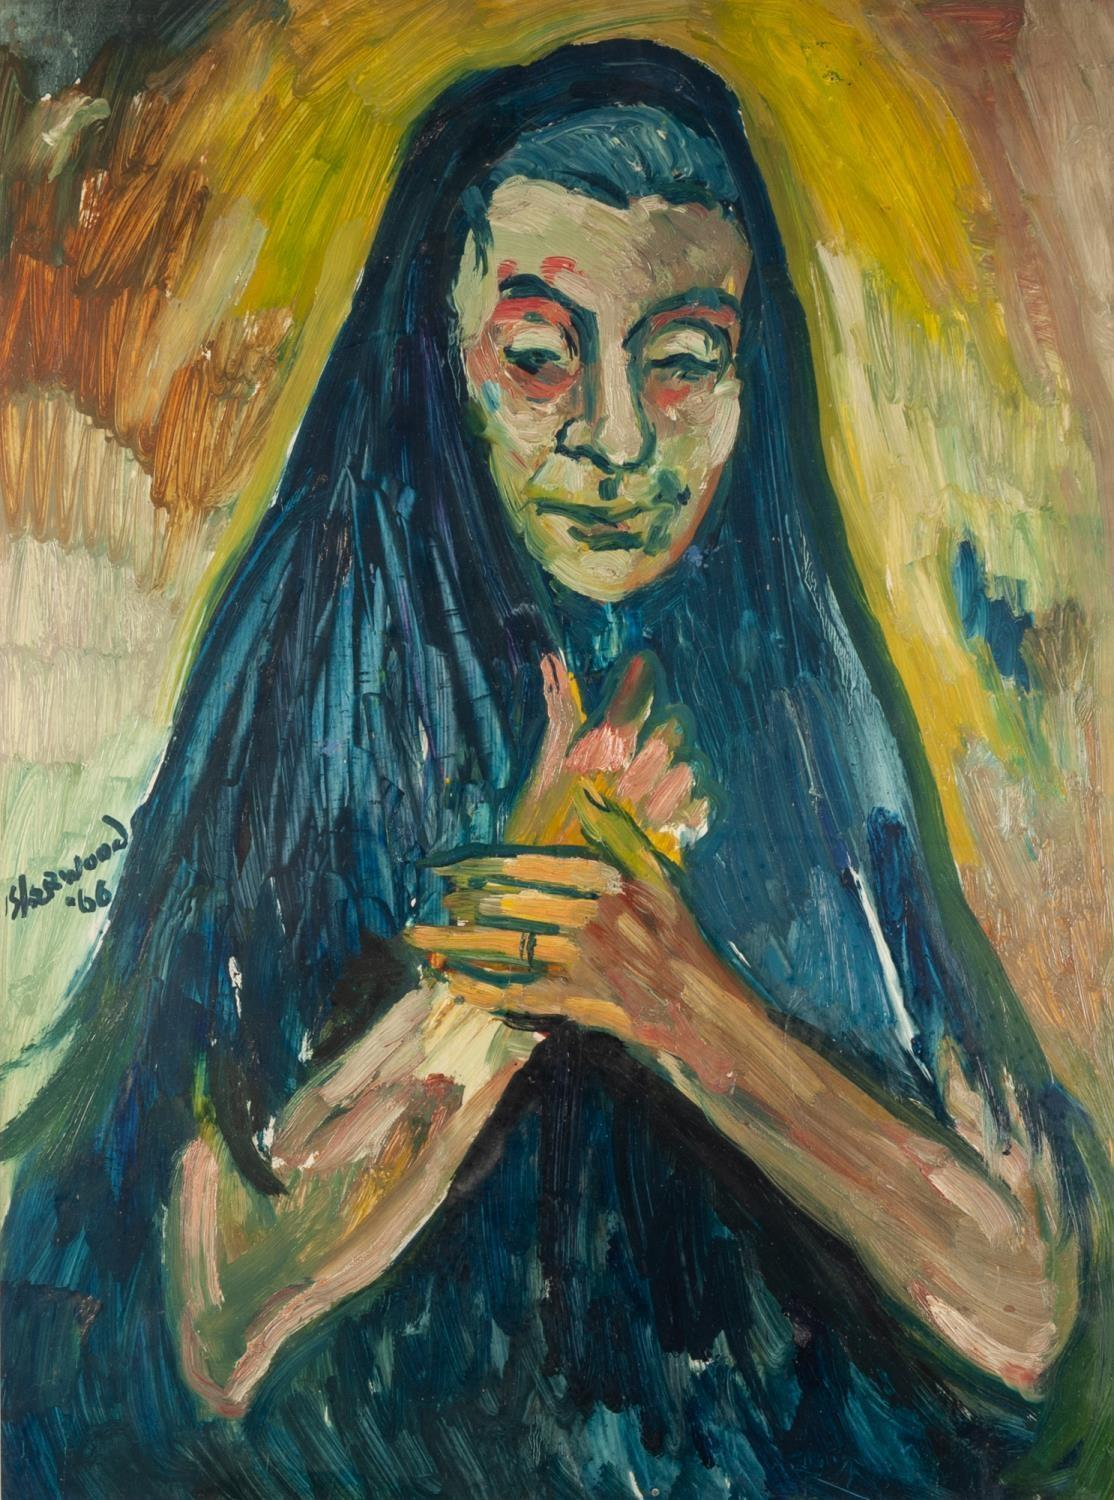 Lot 69 - ?LAWRENCE ISHERWOOD (1917-1988) OIL PAINTING The Wigan Madonna Signed and dated (19)66 23 ½? x 17 ½?